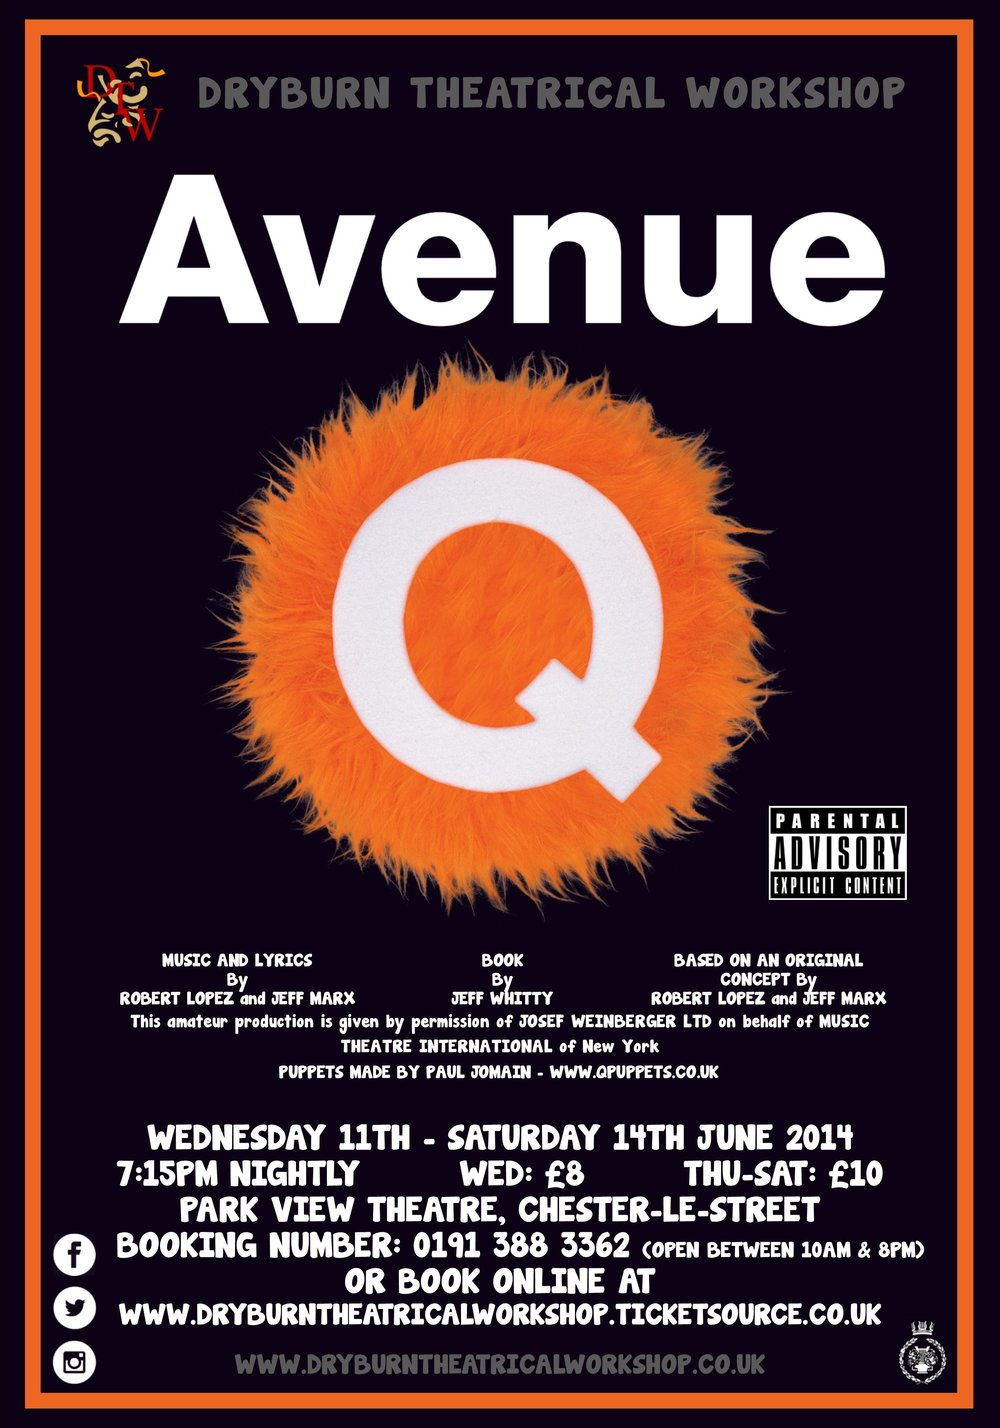 """""""AND AT THE END OF THE DAY, THERE'S NO WHERE TO GO, BUT HOME TO AVENUE Q."""" -"""